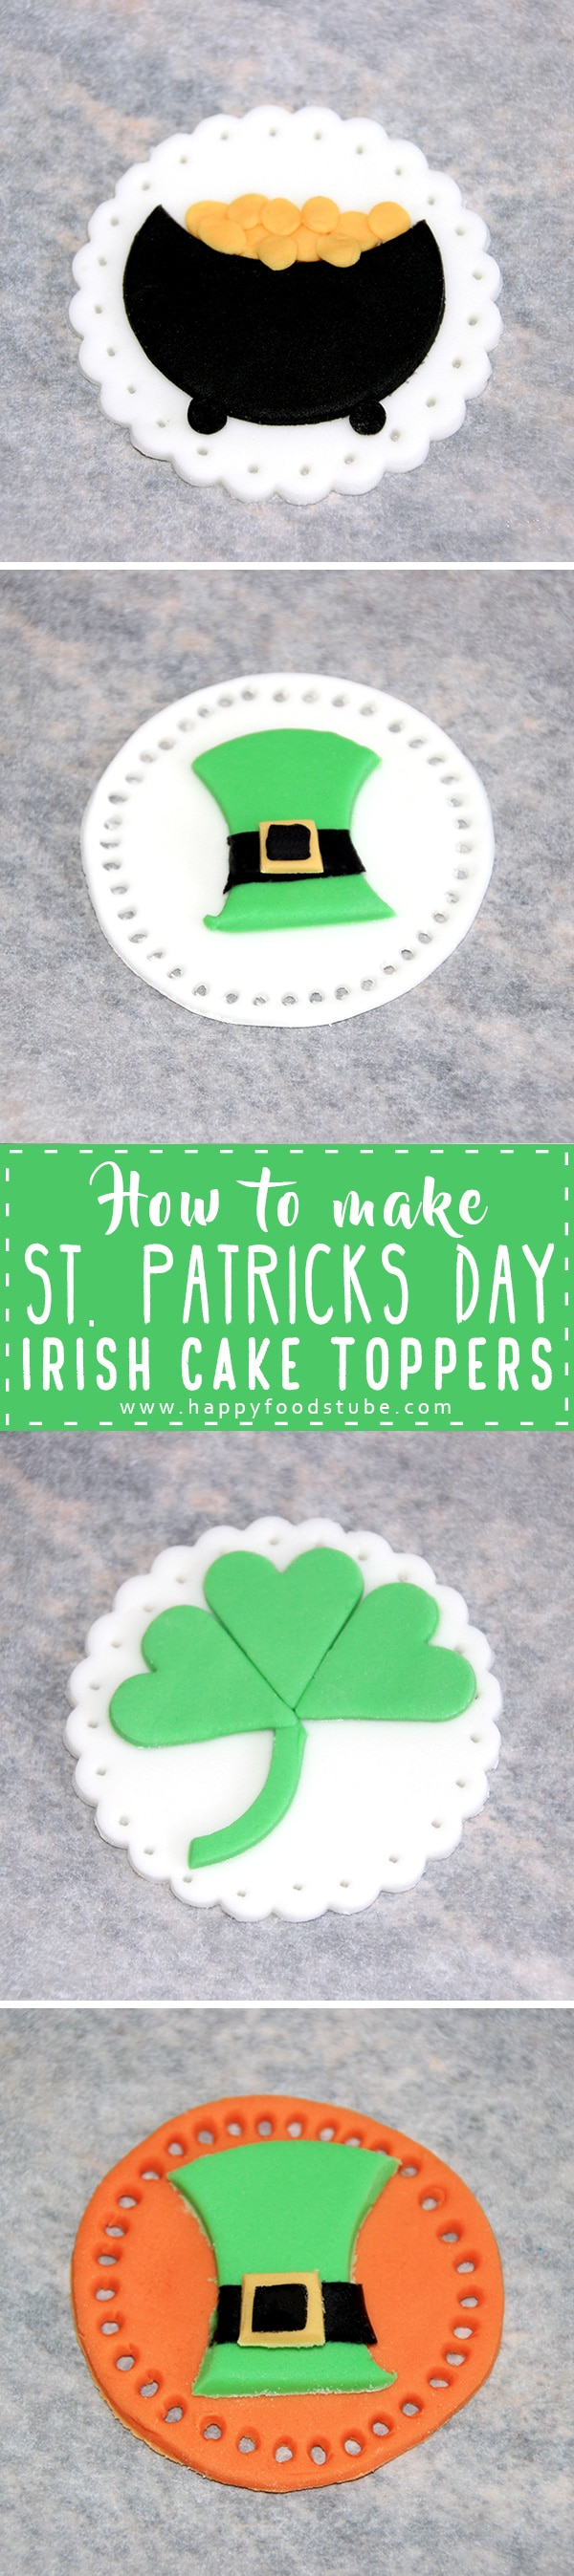 How to make St Patrick's Day Irish Cake Toppers. Fondant tutorial. Learn how to make Irish themed easy cake decorations - Pot of Gold, Leprechaun Hat and Irish Shamrock